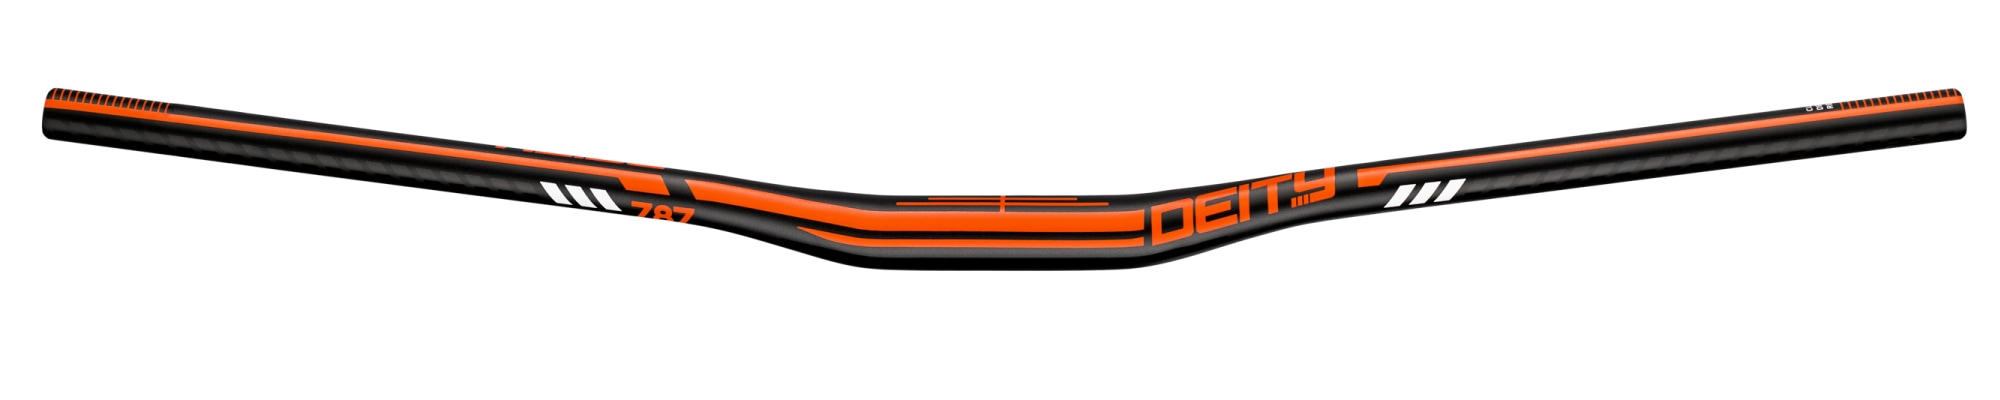 DEITY SKYLINE HANDLEBAR 15MM